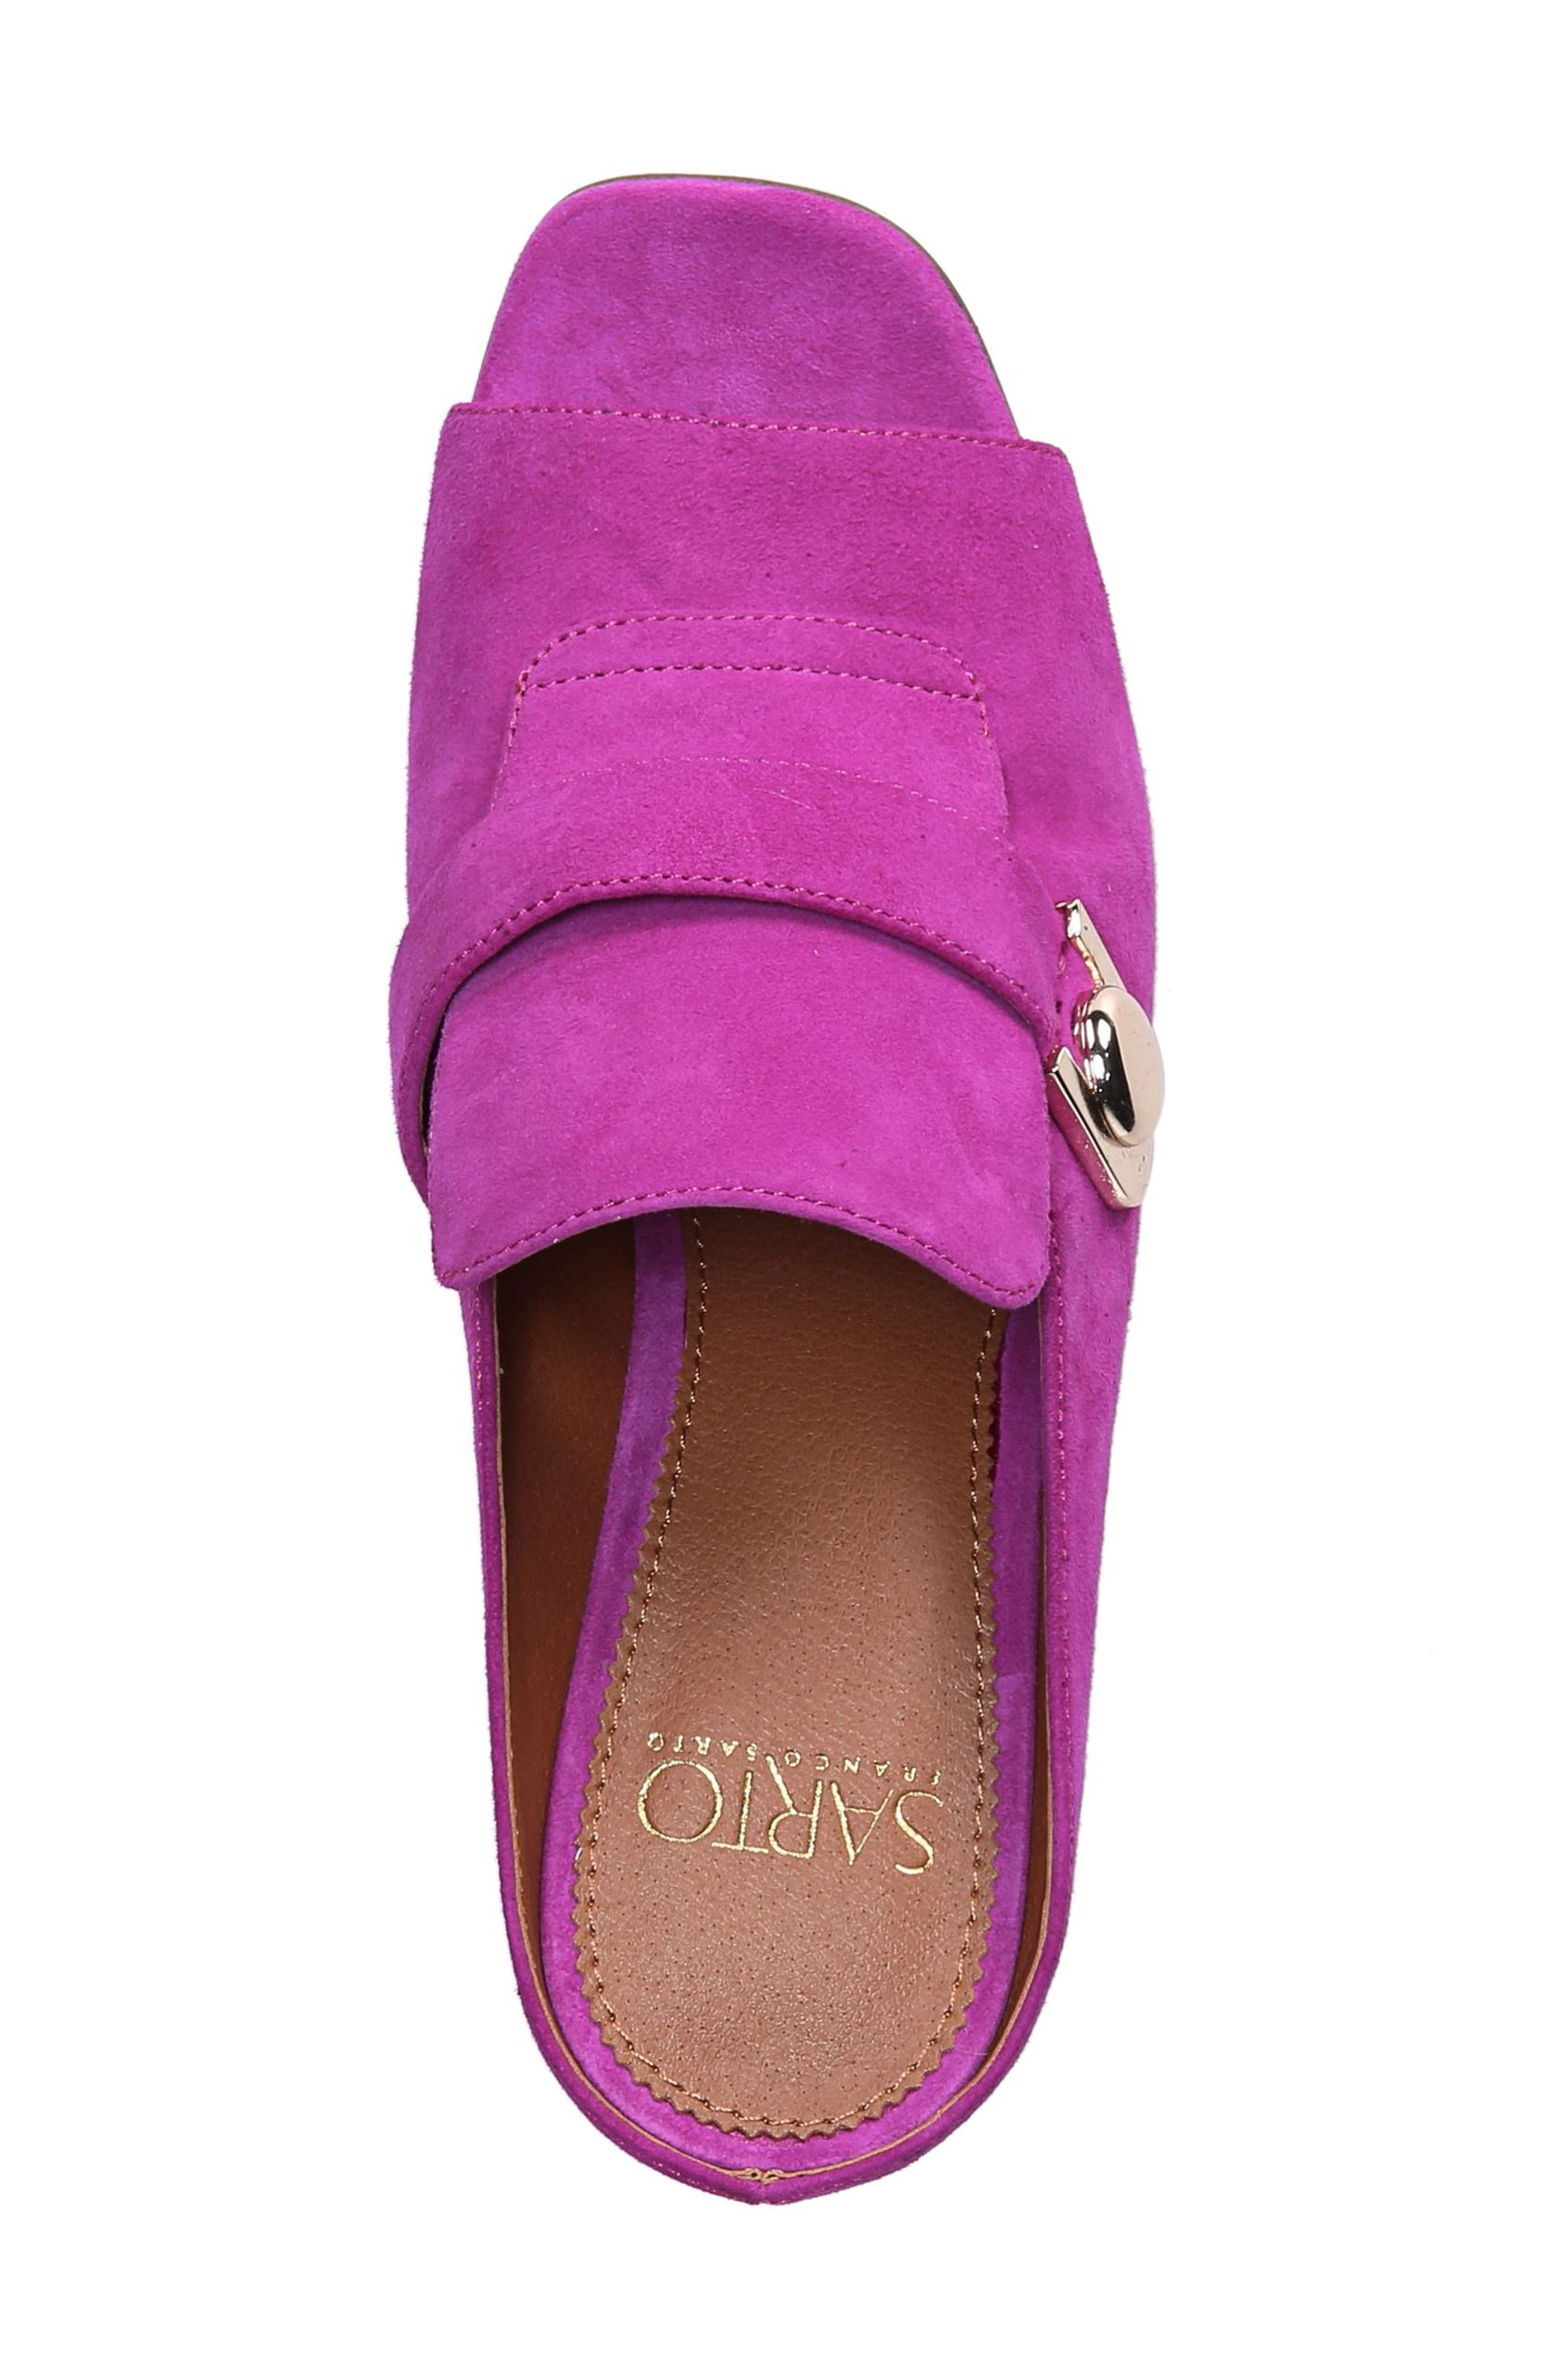 Rosalie Block Heel Sandal,                             Alternate thumbnail 5, color,                             Wild Violet Suede